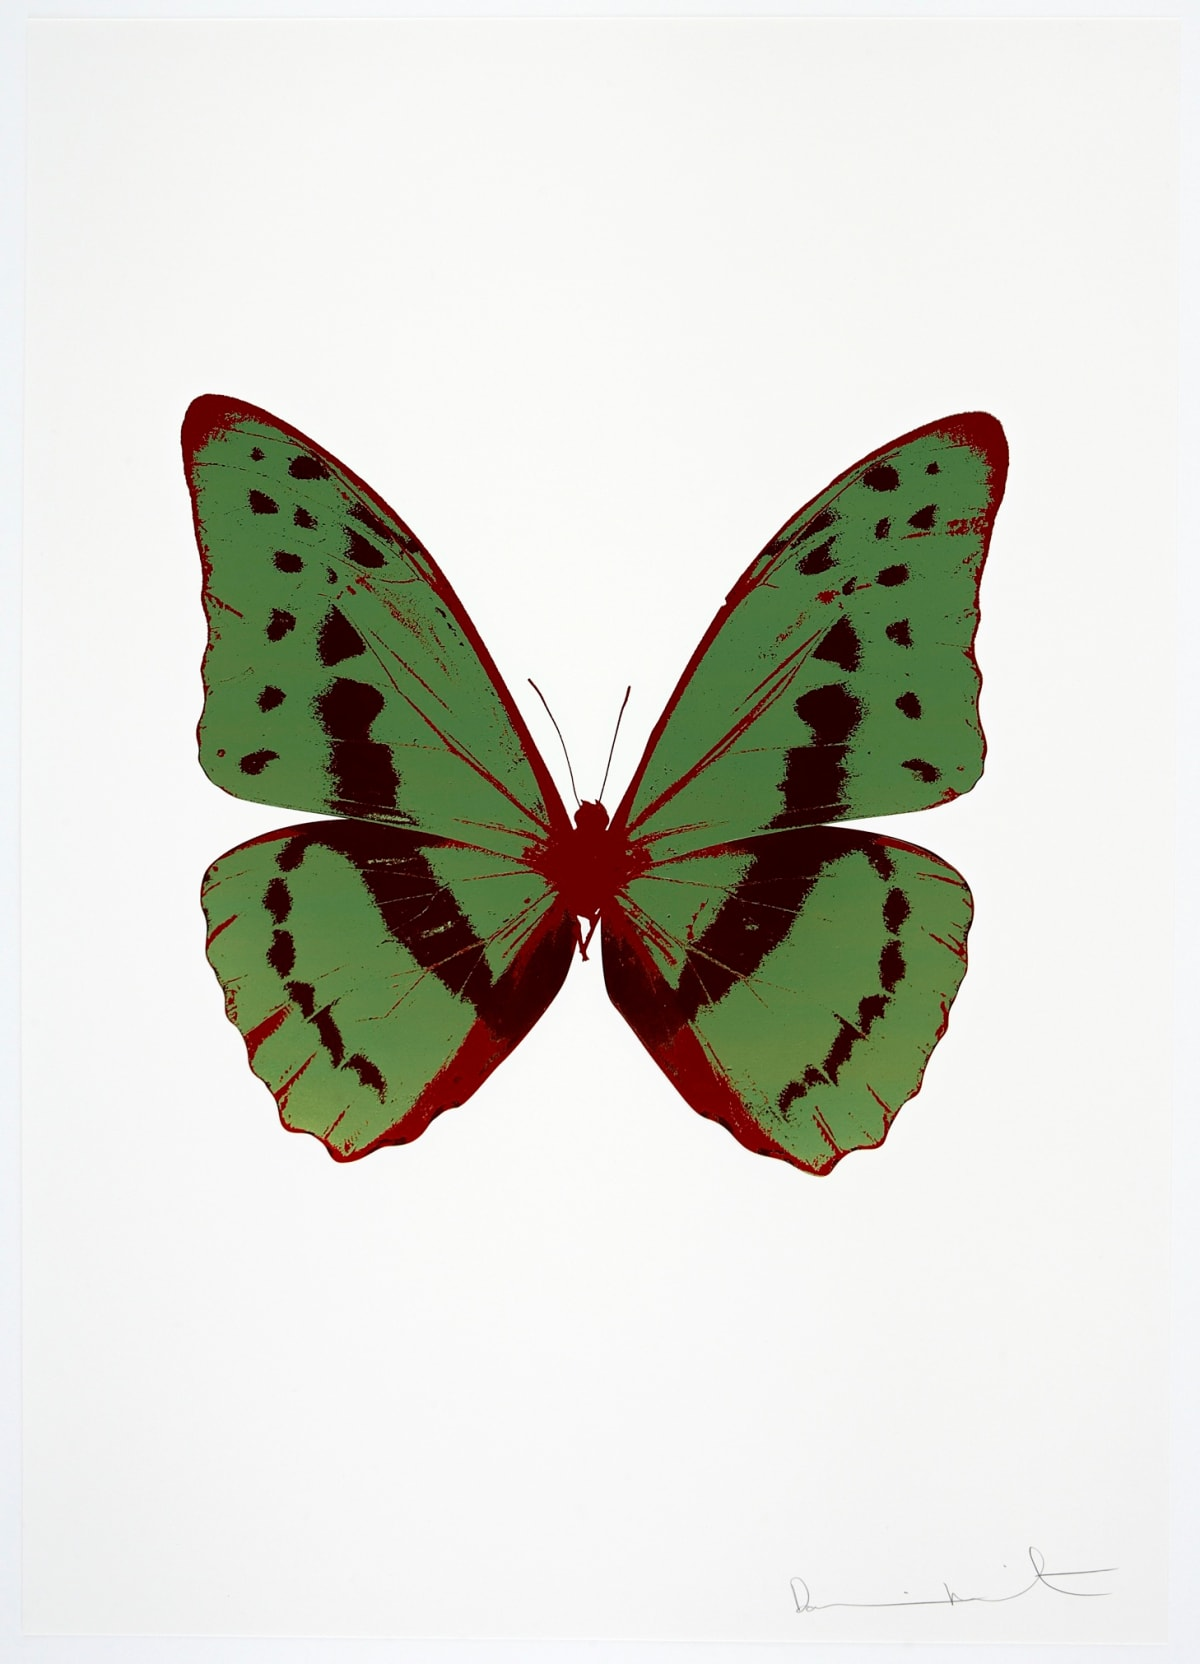 Damien Hirst The Souls III - Leaf Green/Burgundy/Chilli Red, 2010 3 colour foil block on 300gsm Arches 88 archival paper. Signed and numbered. Published by Paul Stolper and Other Criteria 72 x 51cm OC7909 / 660-12 Edition of 15